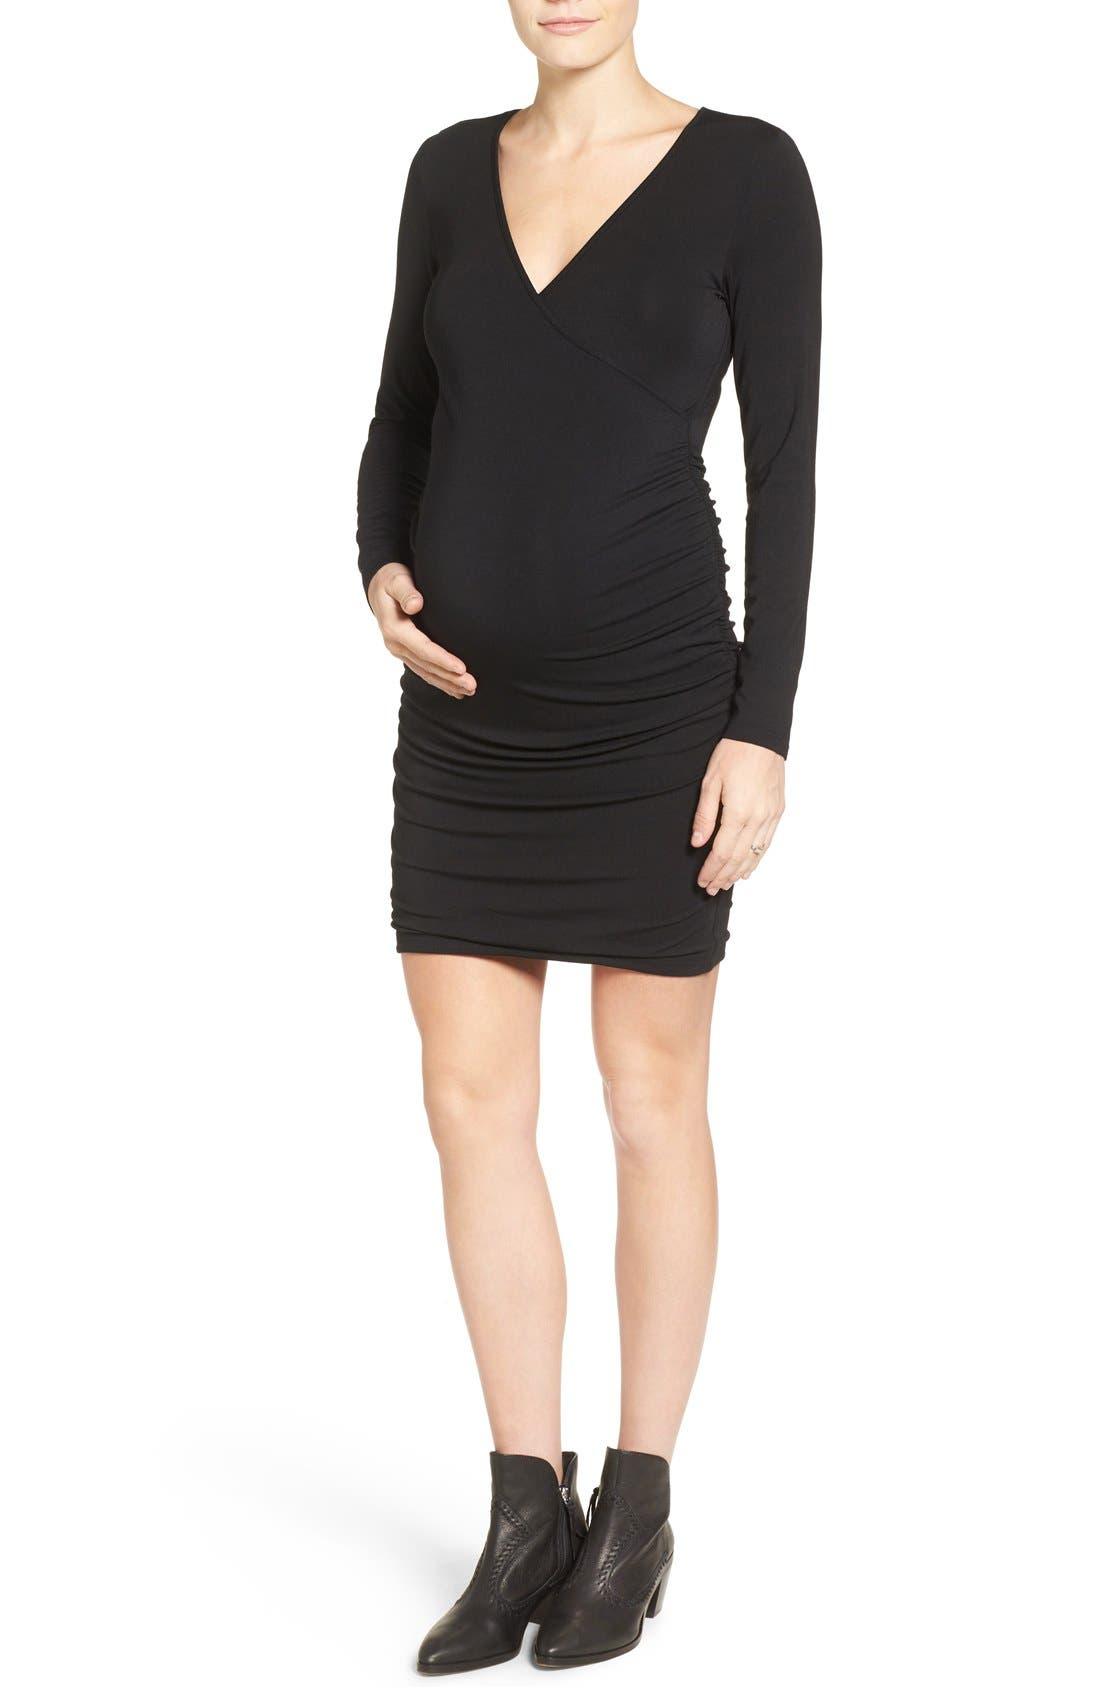 Main Image - Tart 'Peaches' Maternity Body-Con Dress